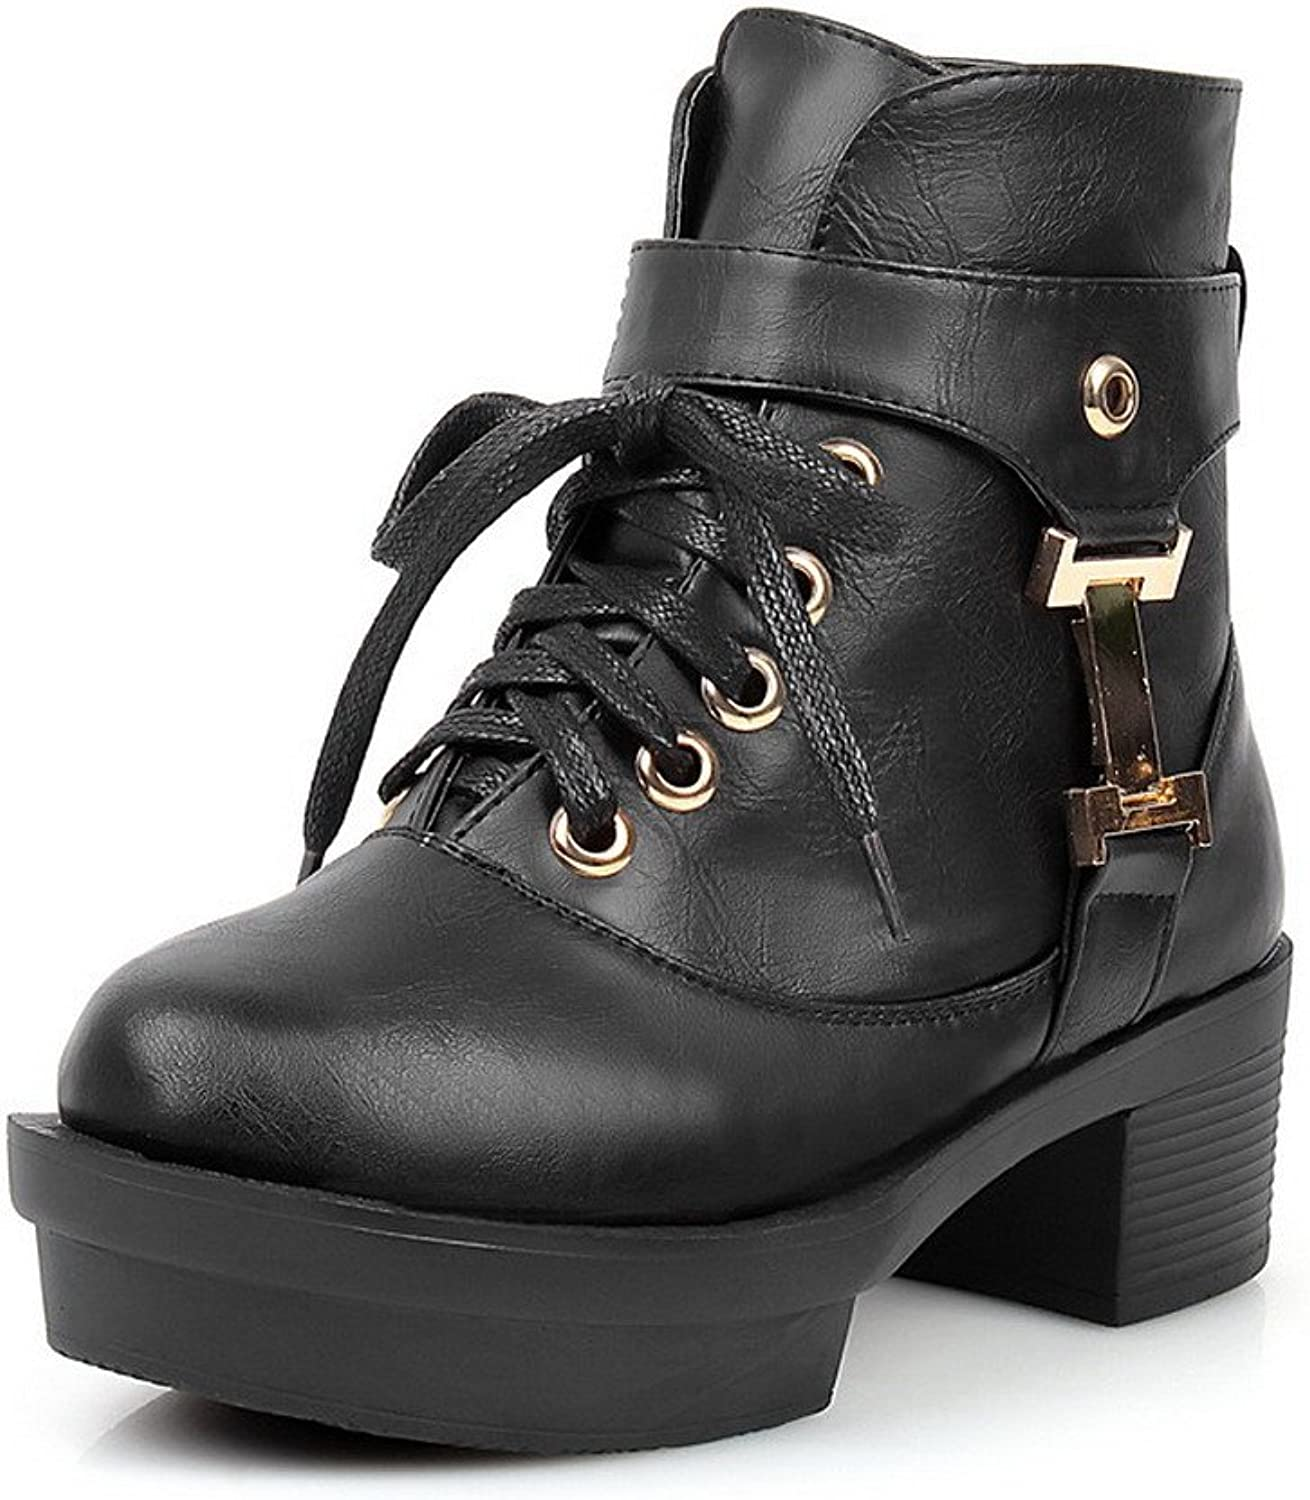 WeenFashion Women's Pu Solid Lace up Round Closed Toe Kitten Heels Boots